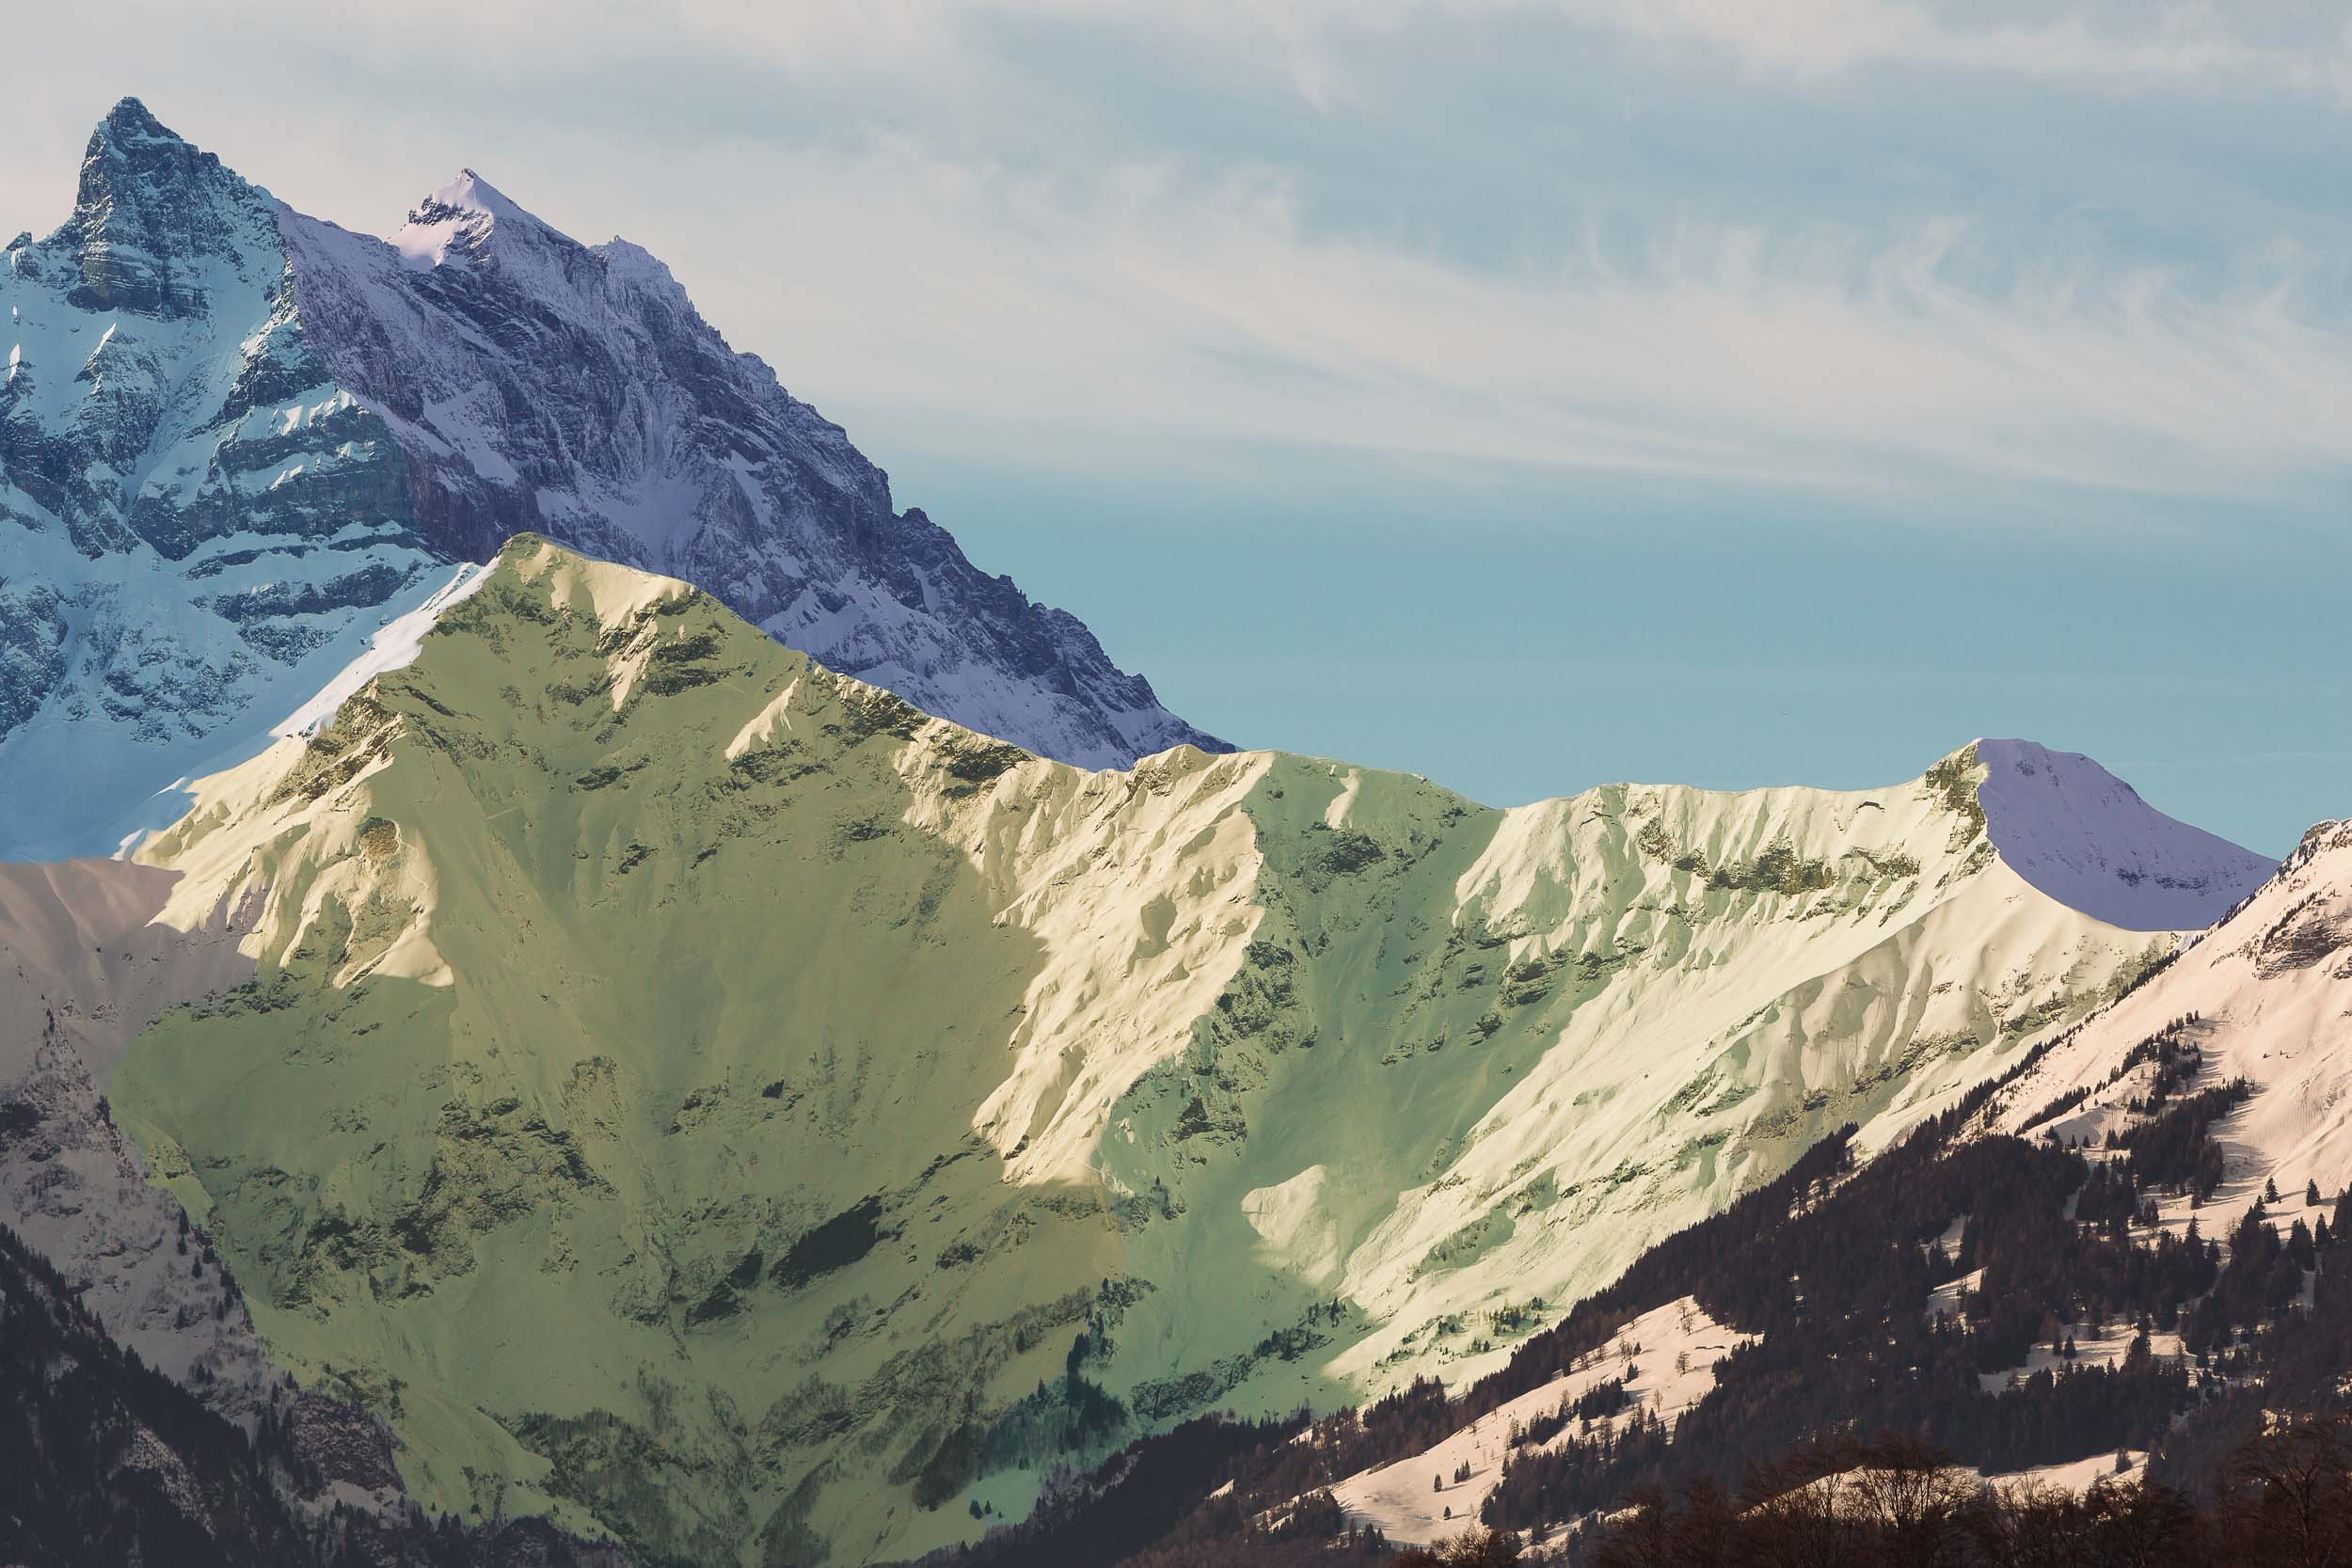 From the photo book 'Mountain' exploring the fragmented nature of perception and memory.